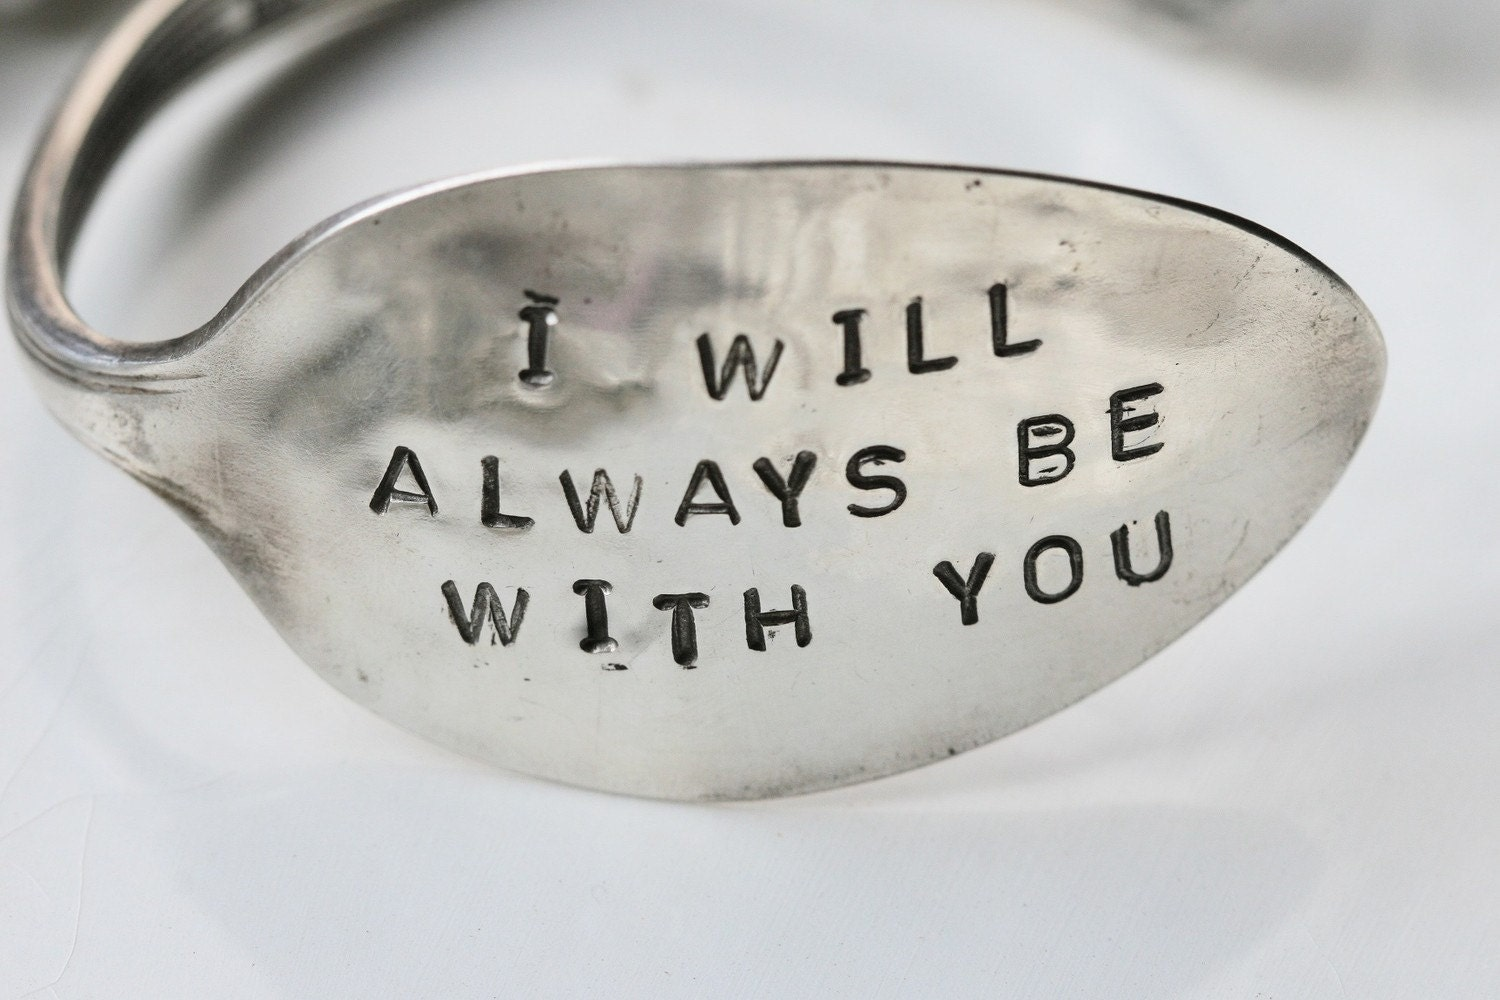 I Will Always Be With You Silver Spoon Cuff Bracelet